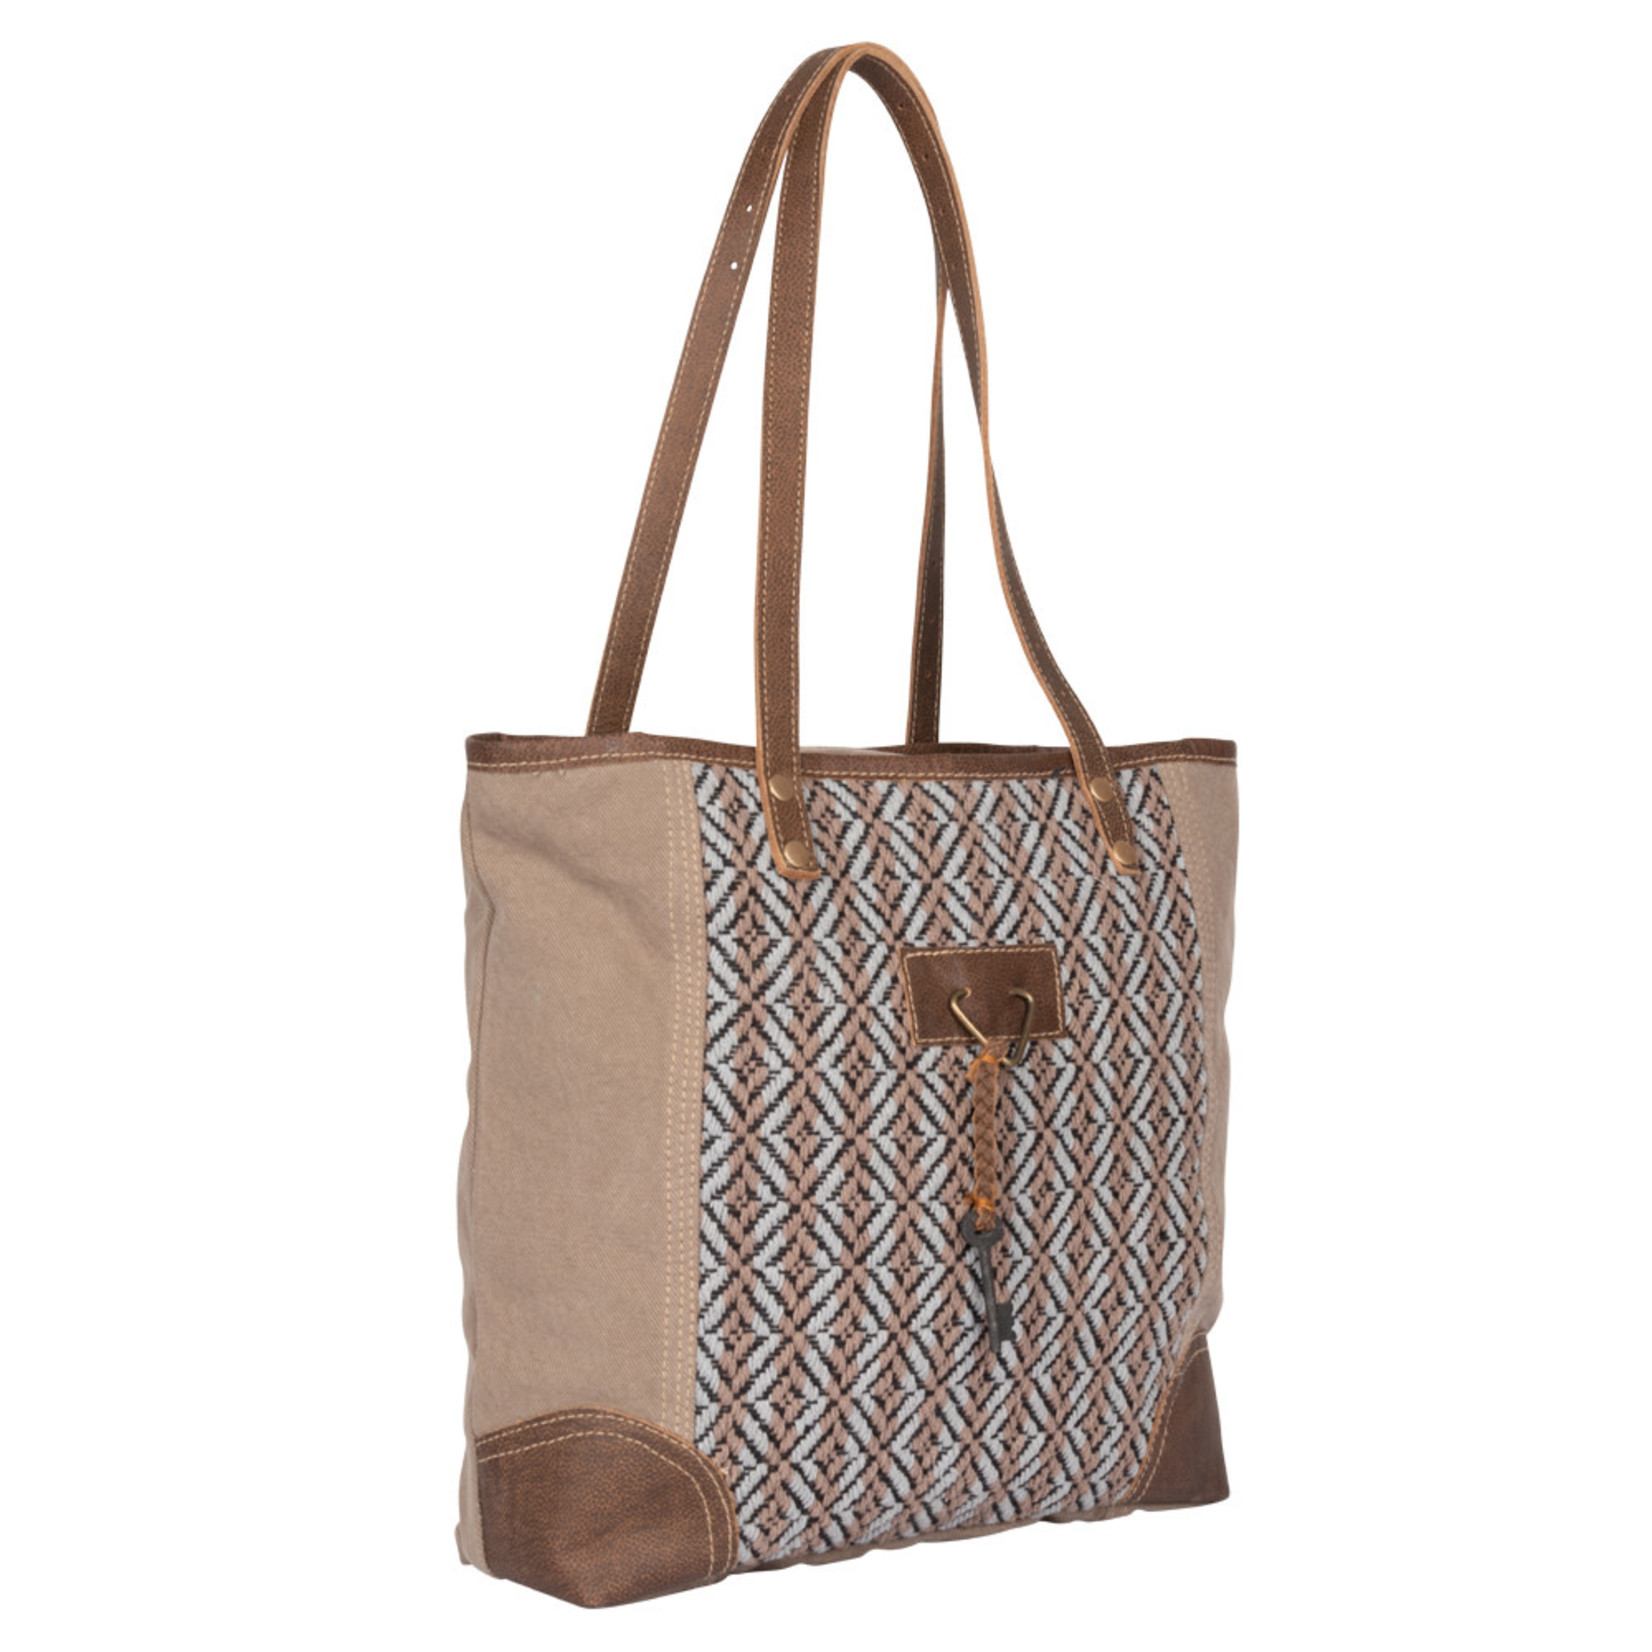 Myra Bags S-2188 Hot Chocolate Tote Bag